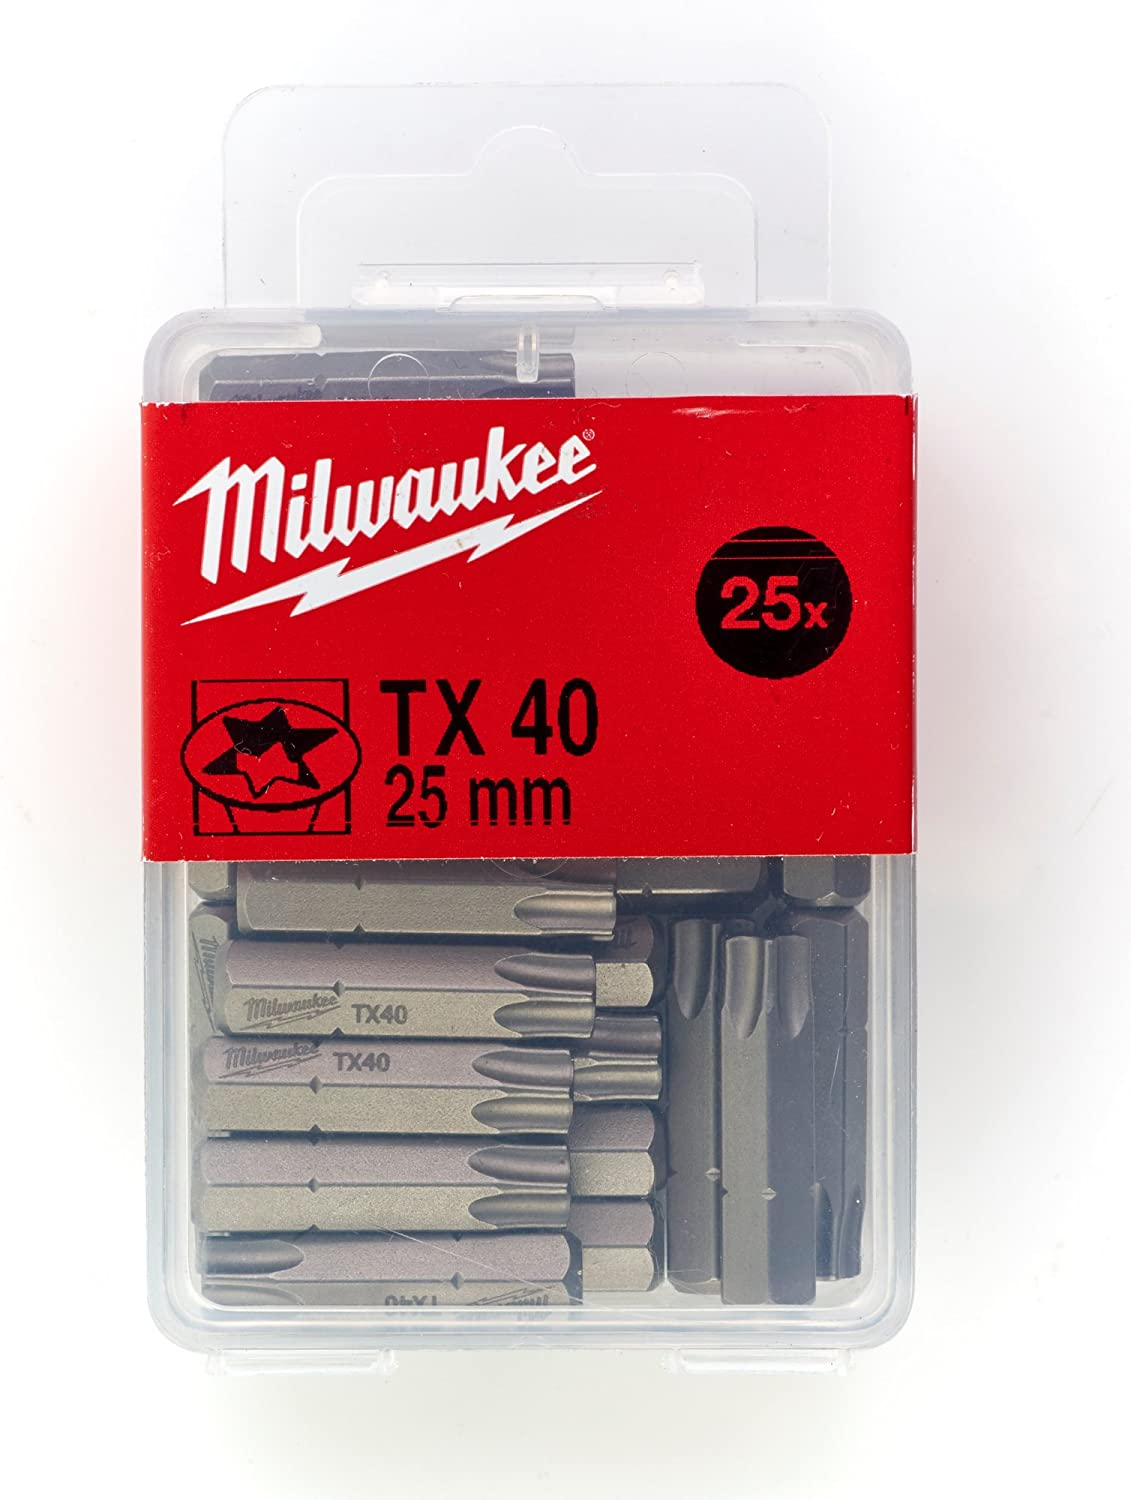 / 25/ pe/ã /‡ AS Milwaukee Ponta TX20/ x 25/ mm/